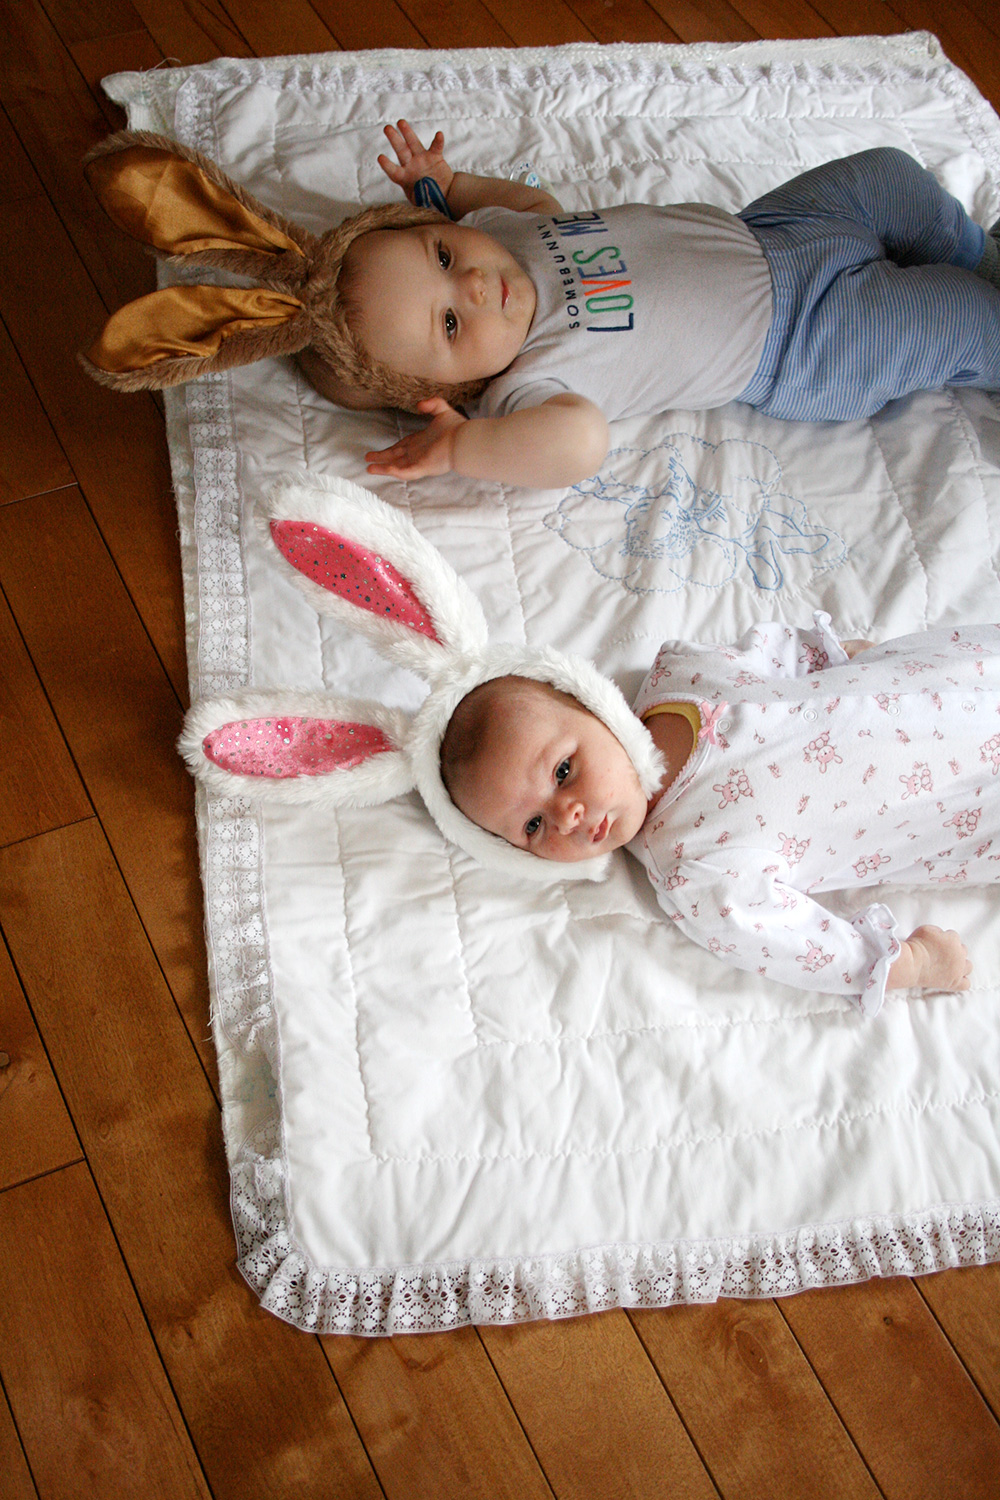 Molly and her cousin Jackson made some super cute Easter bunnies!